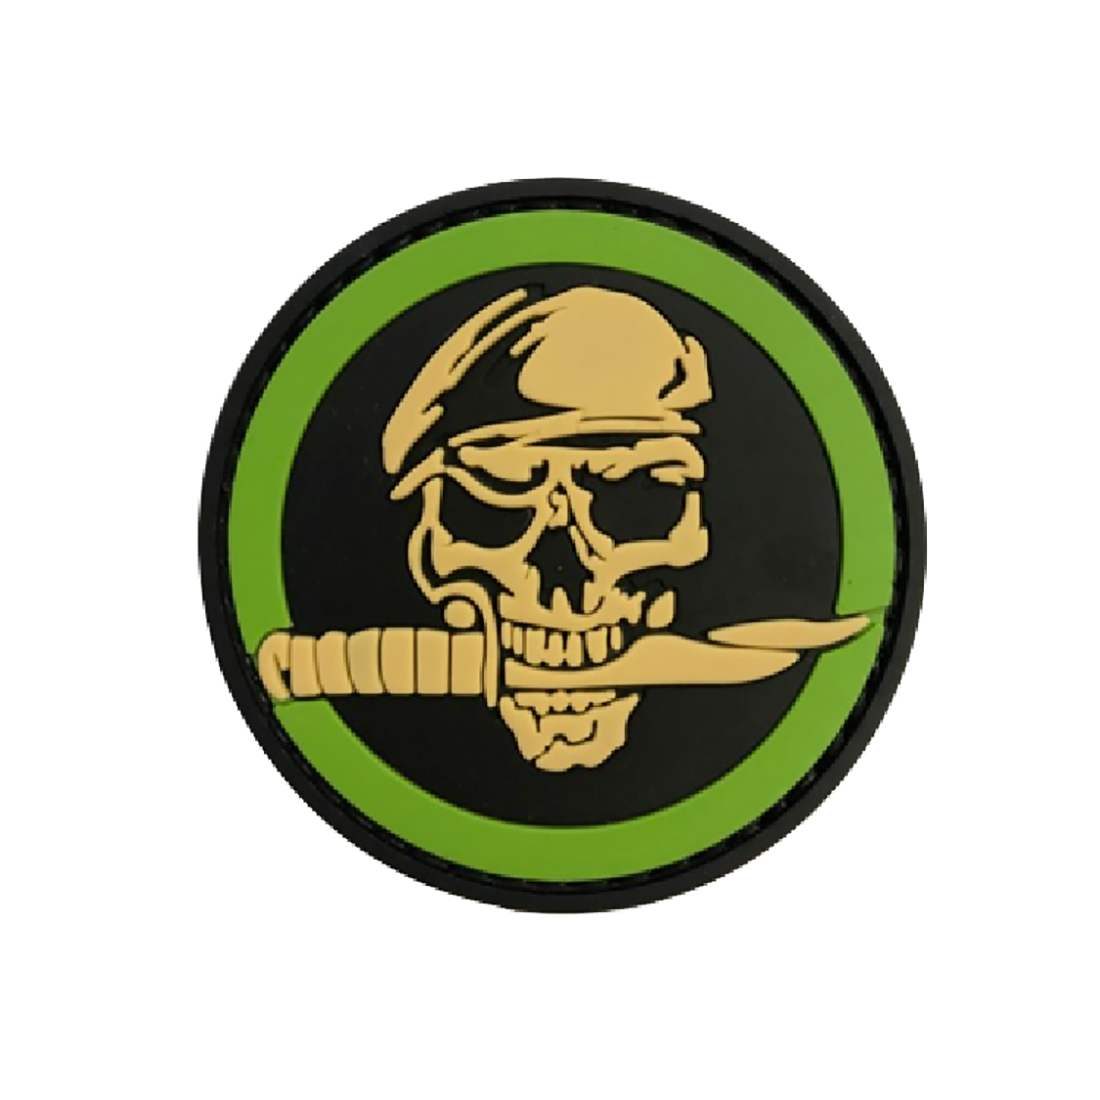 SKULL KNIFE Tactical Rubber Velcro Patches